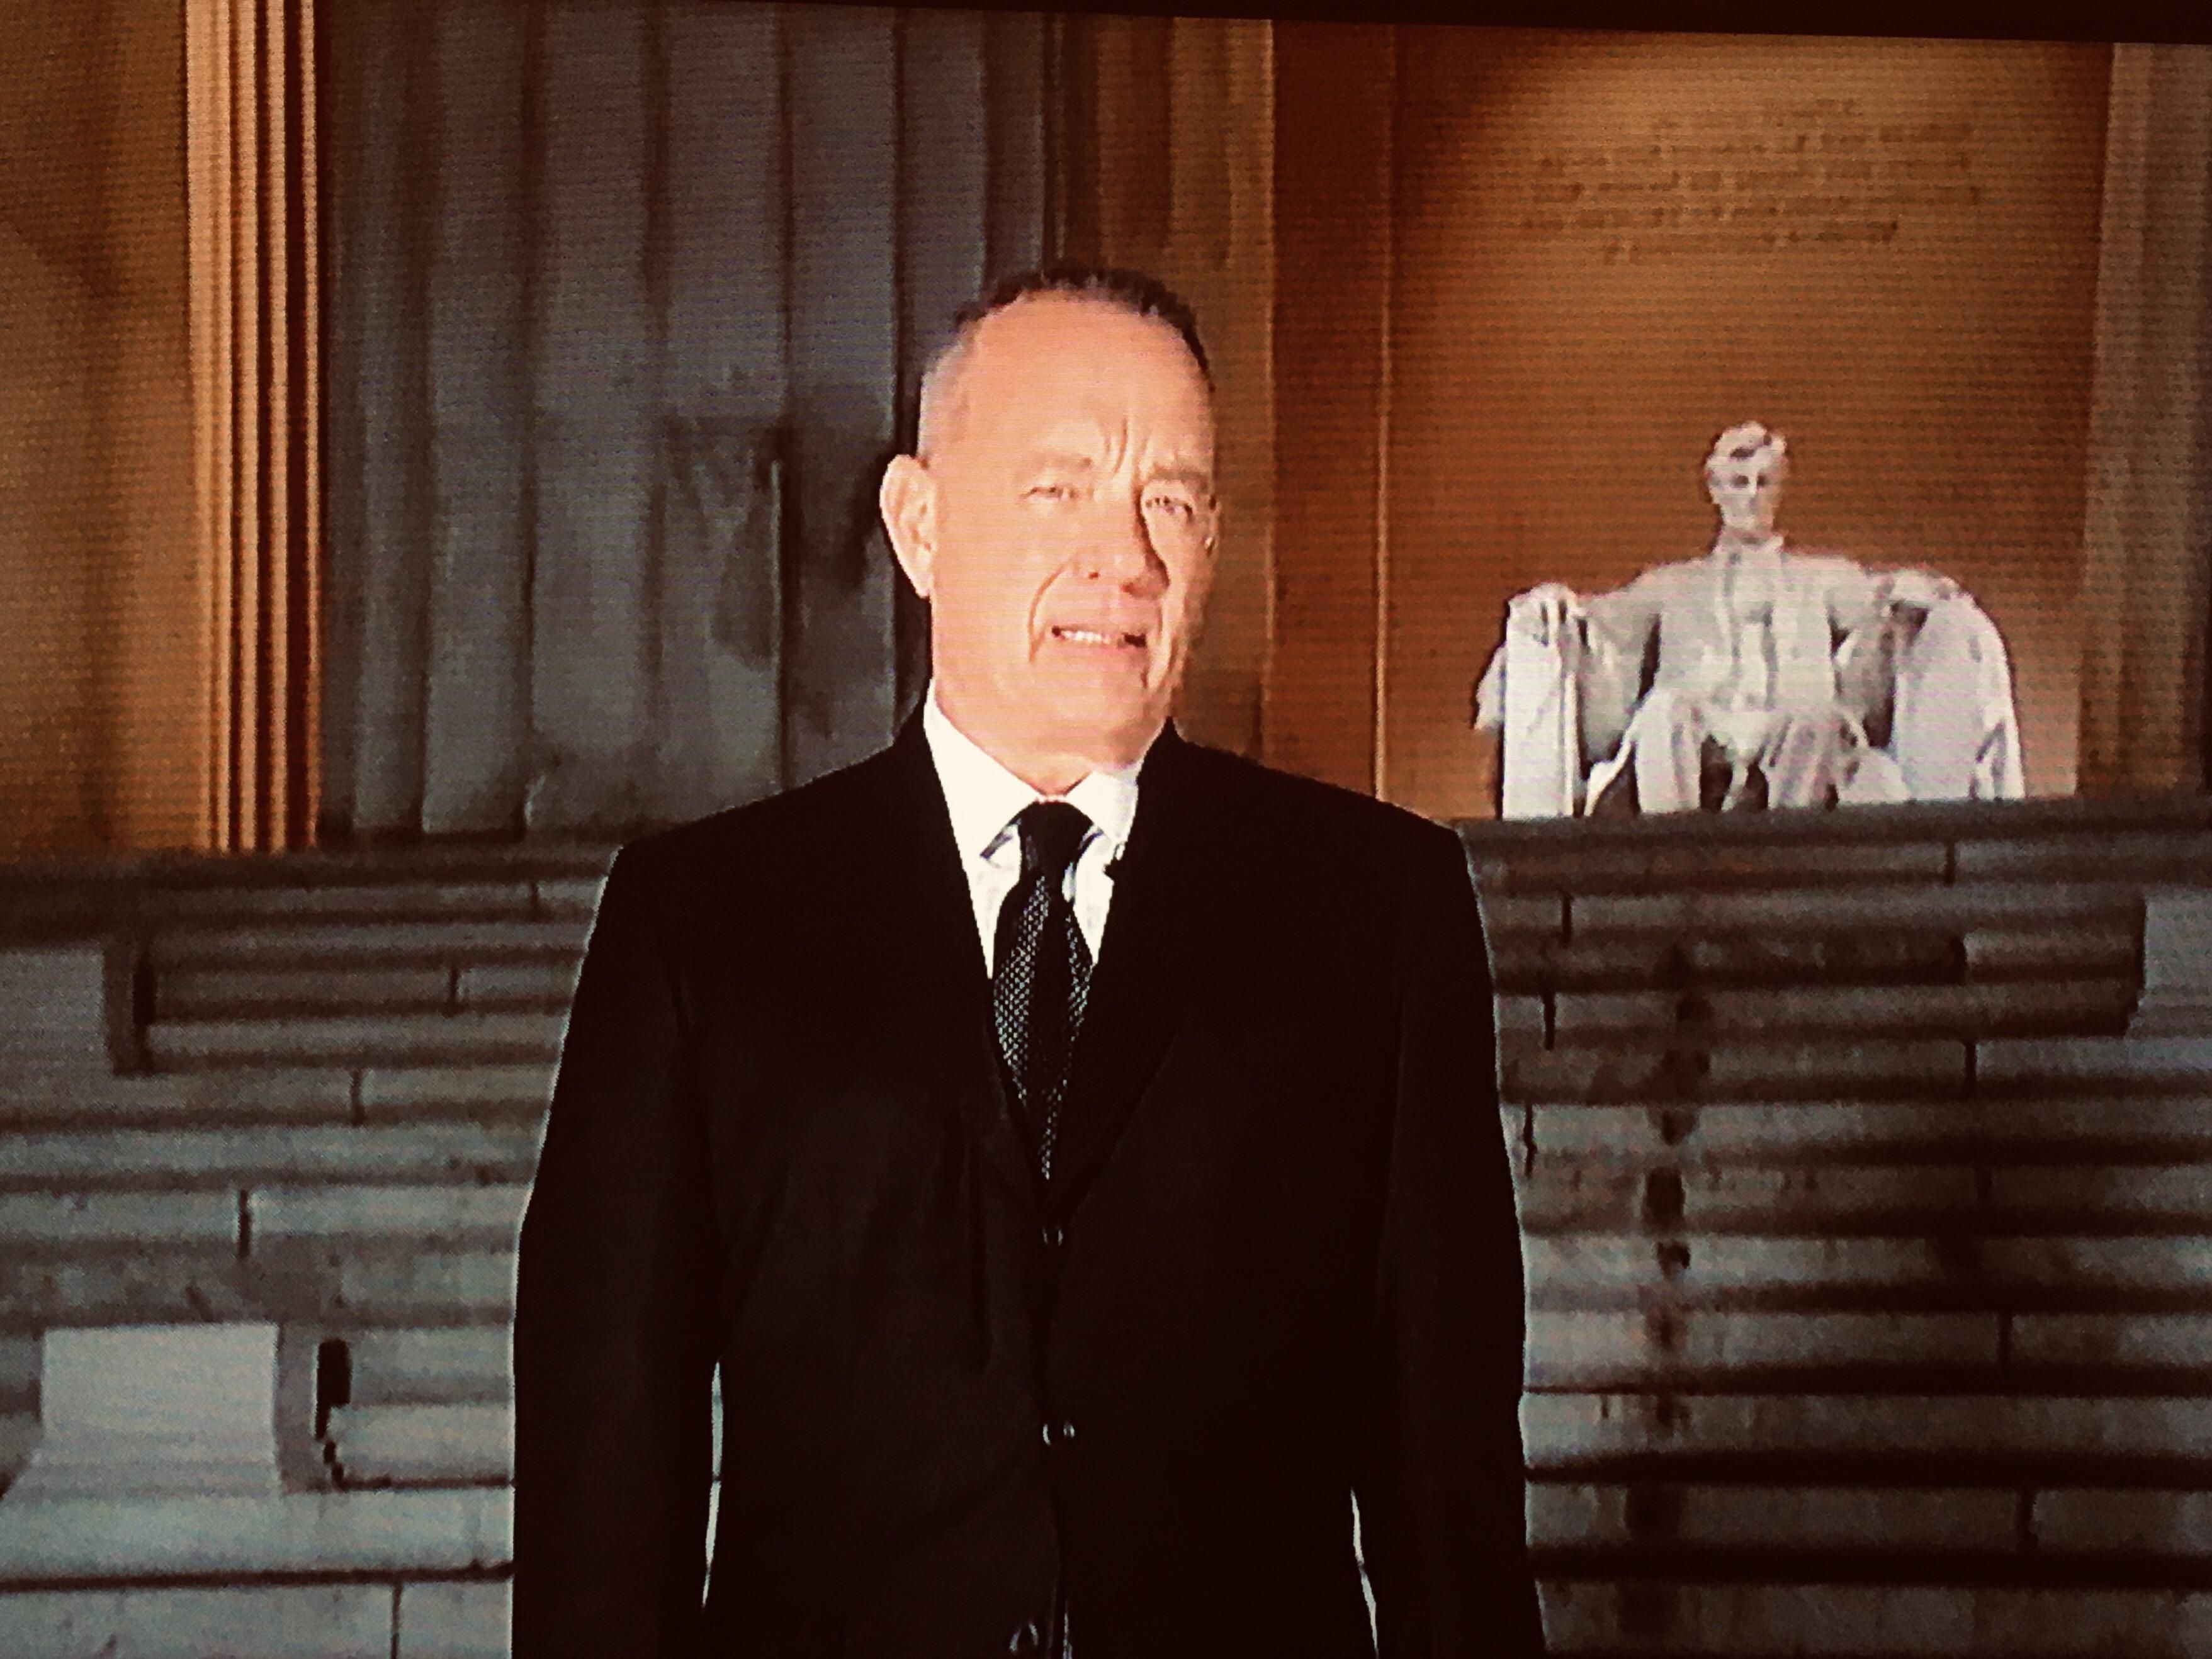 So glad Forrest Gump got to go back to the Lincoln Memorial.